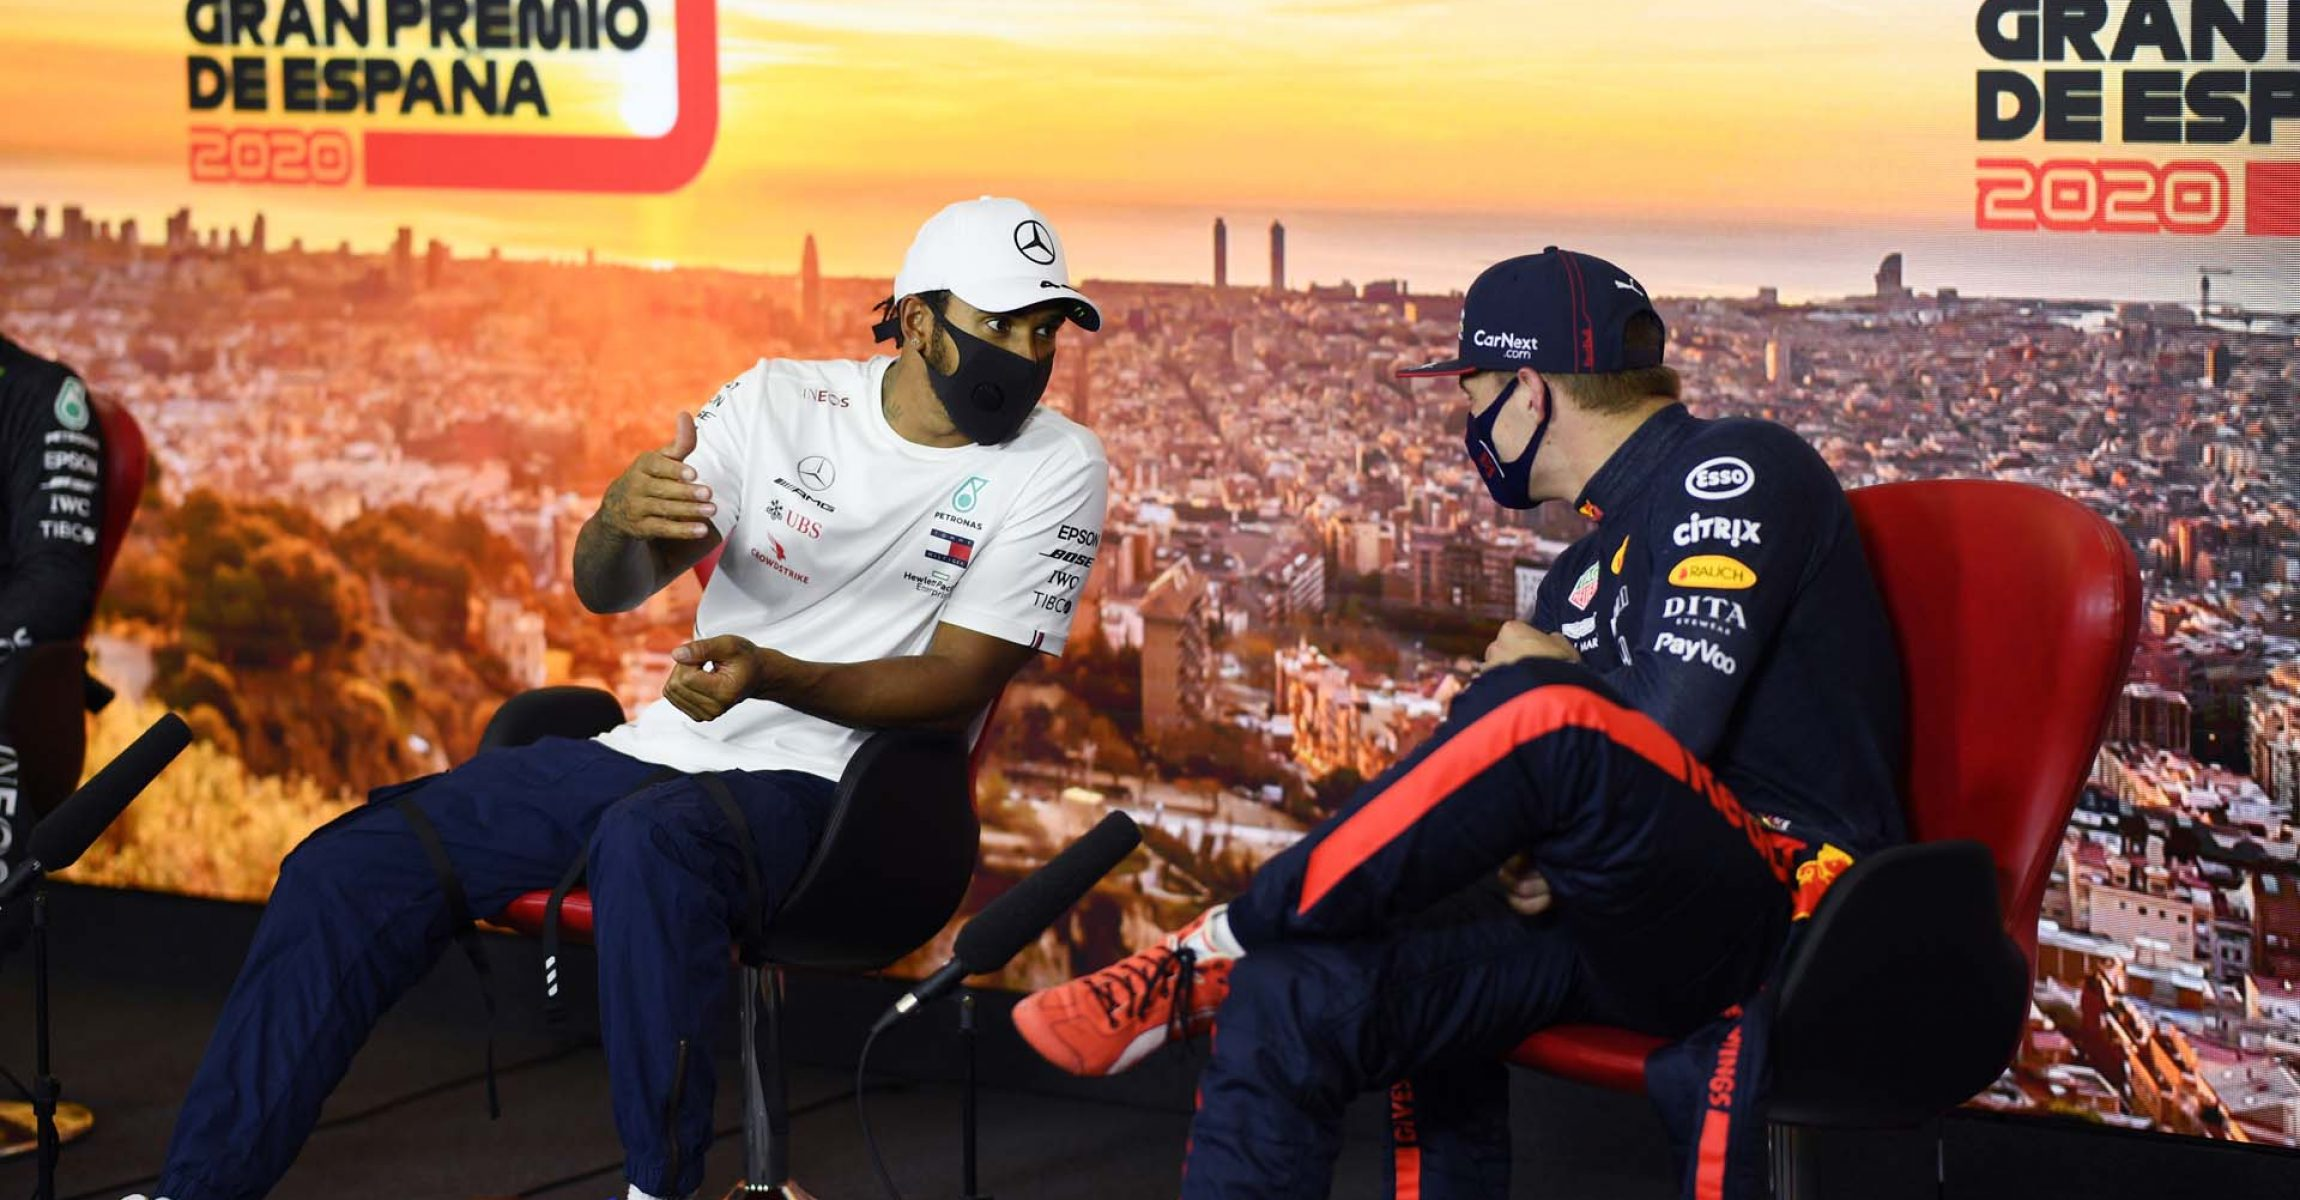 BARCELONA, SPAIN - AUGUST 15: Third placed qualifier Max Verstappen of Netherlands and Red Bull Racing and pole position qualifier Lewis Hamilton of Great Britain and Mercedes GP talk in the Drivers Press Conference during qualifying for the F1 Grand Prix of Spain at Circuit de Barcelona-Catalunya on August 15, 2020 in Barcelona, Spain. (Photo by Rudy Carezzevoli/Getty Images)